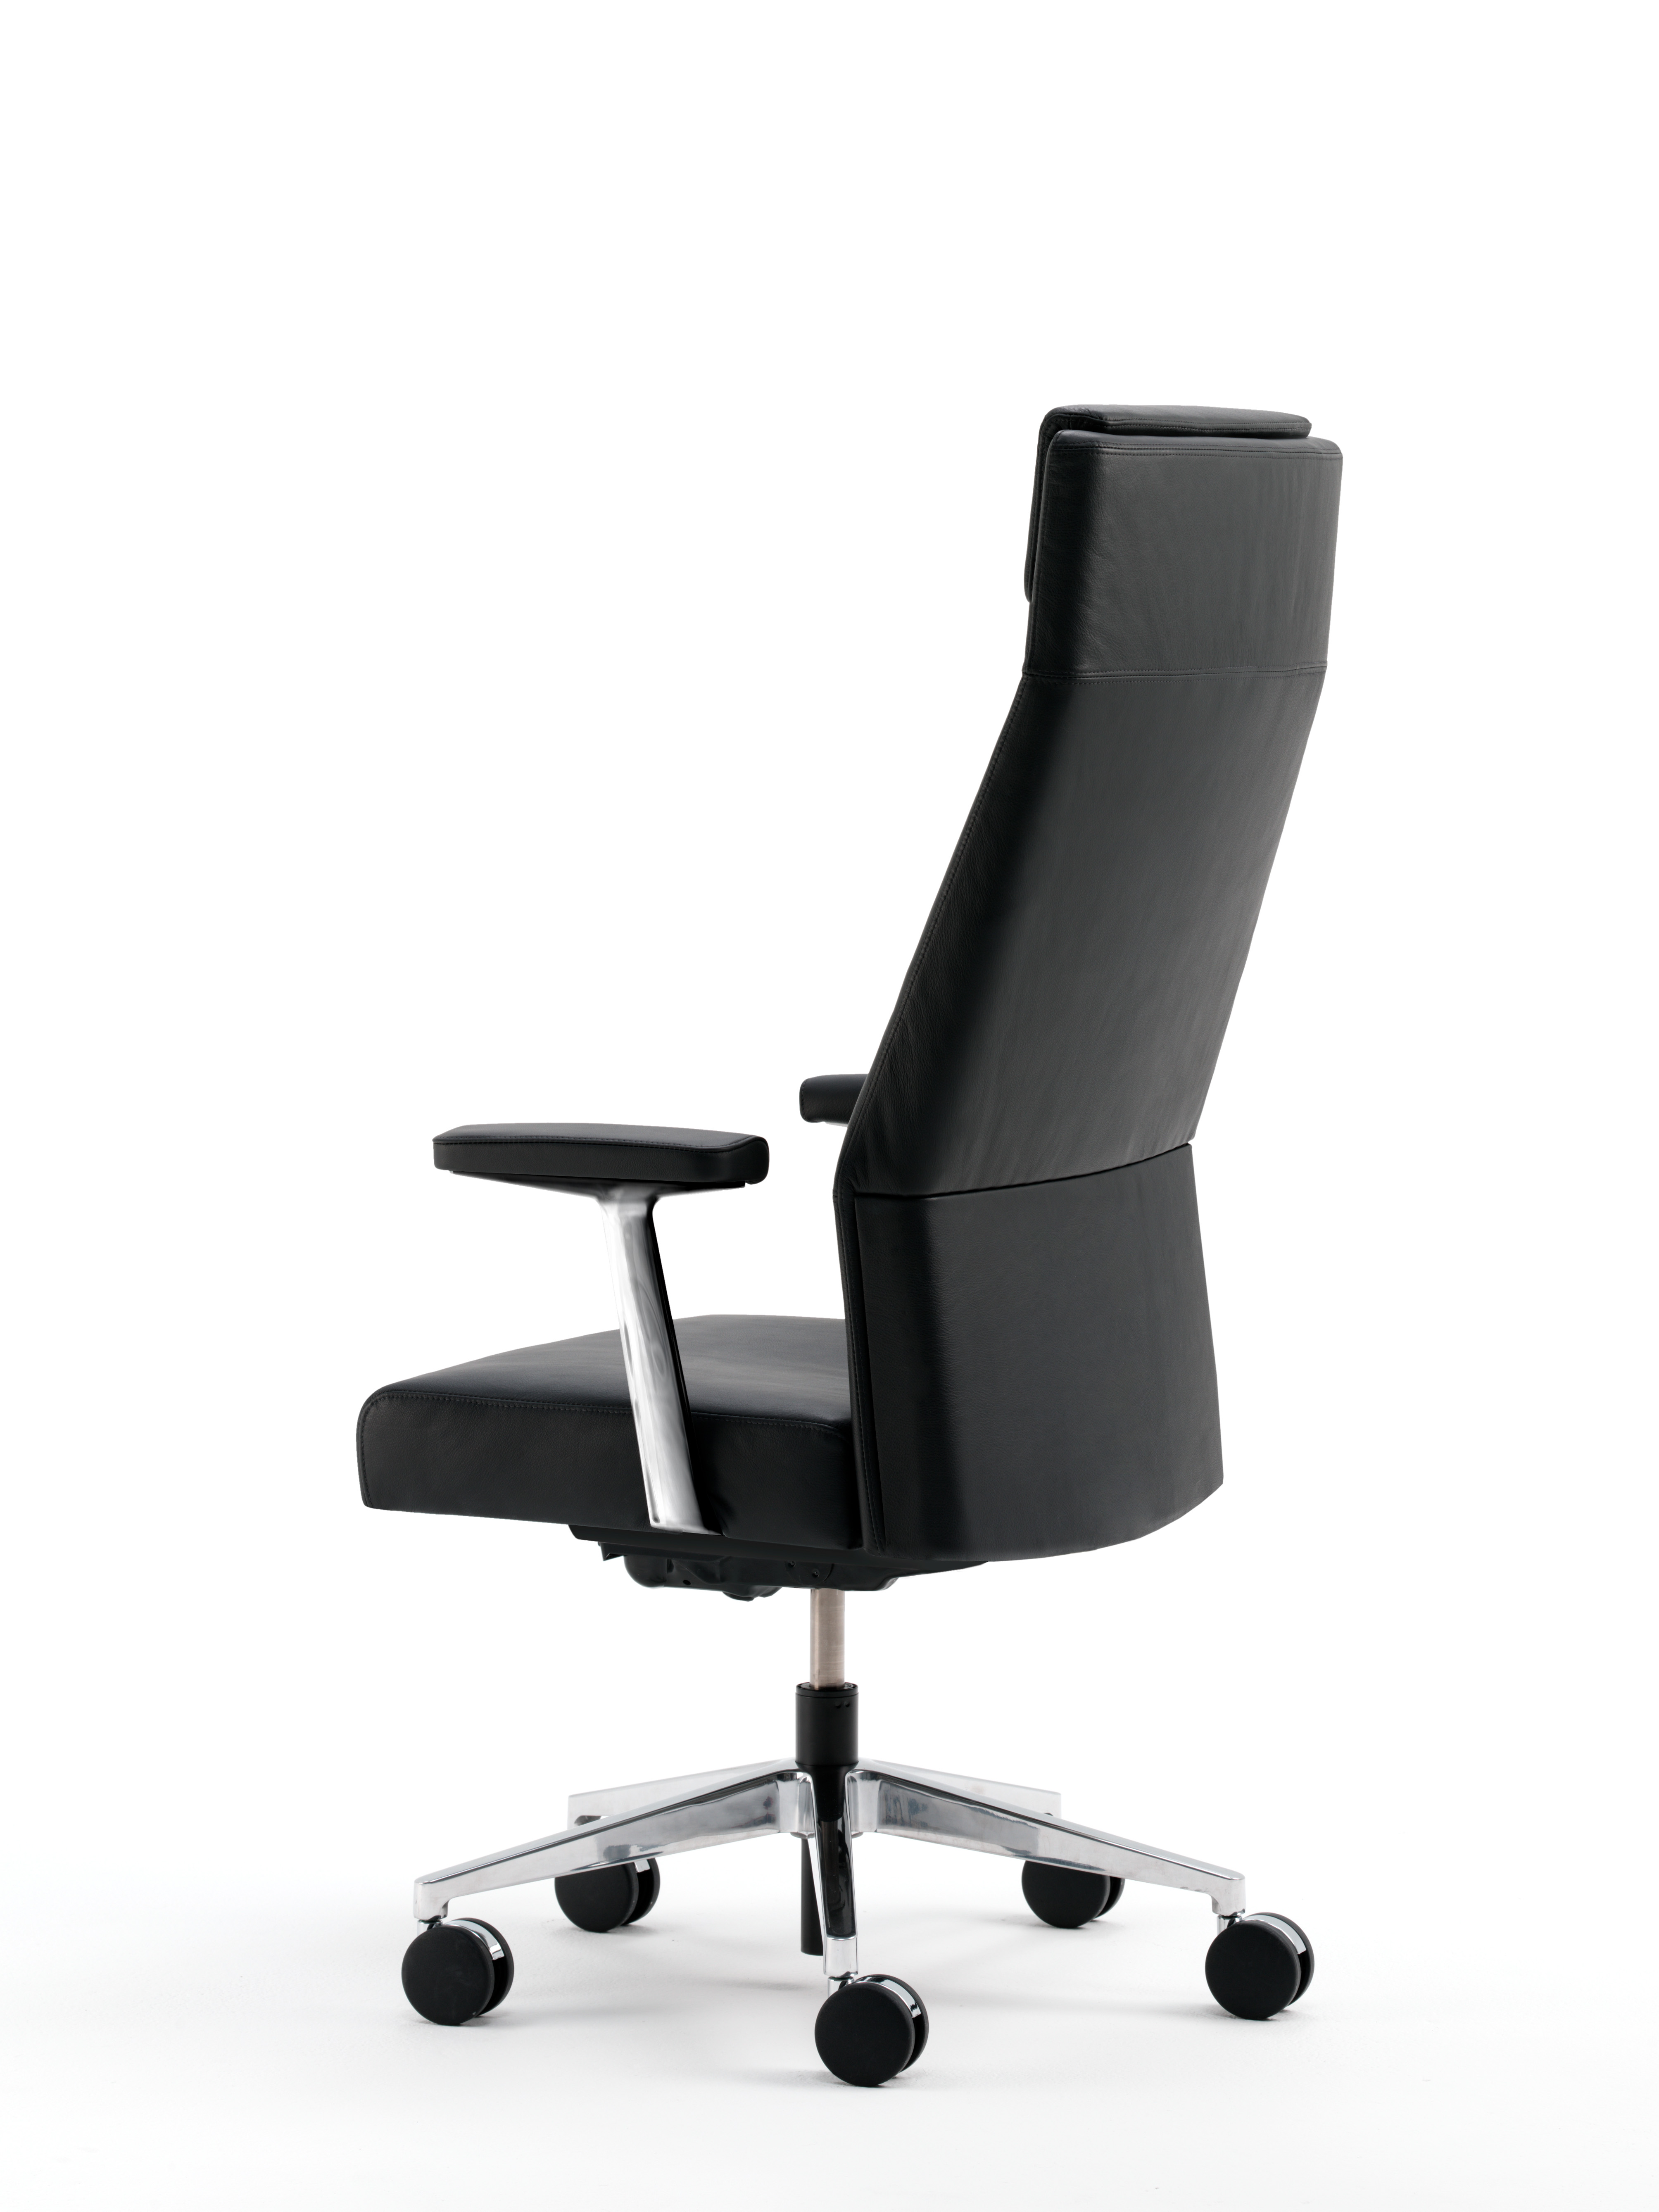 Siento chair